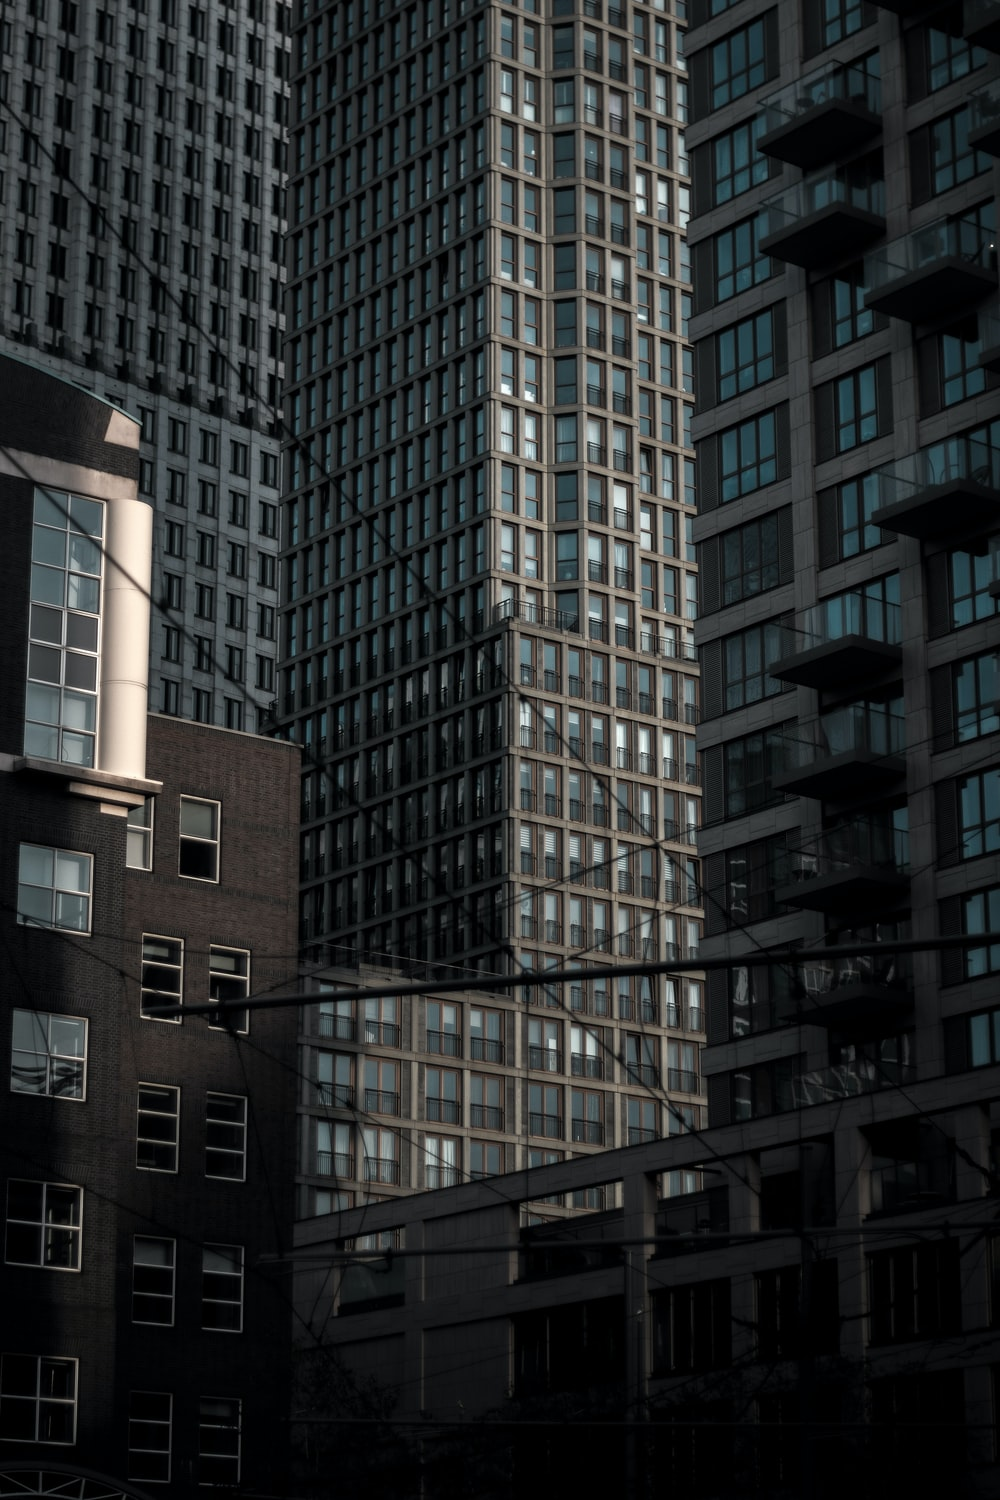 grey concrete buildings during daytime